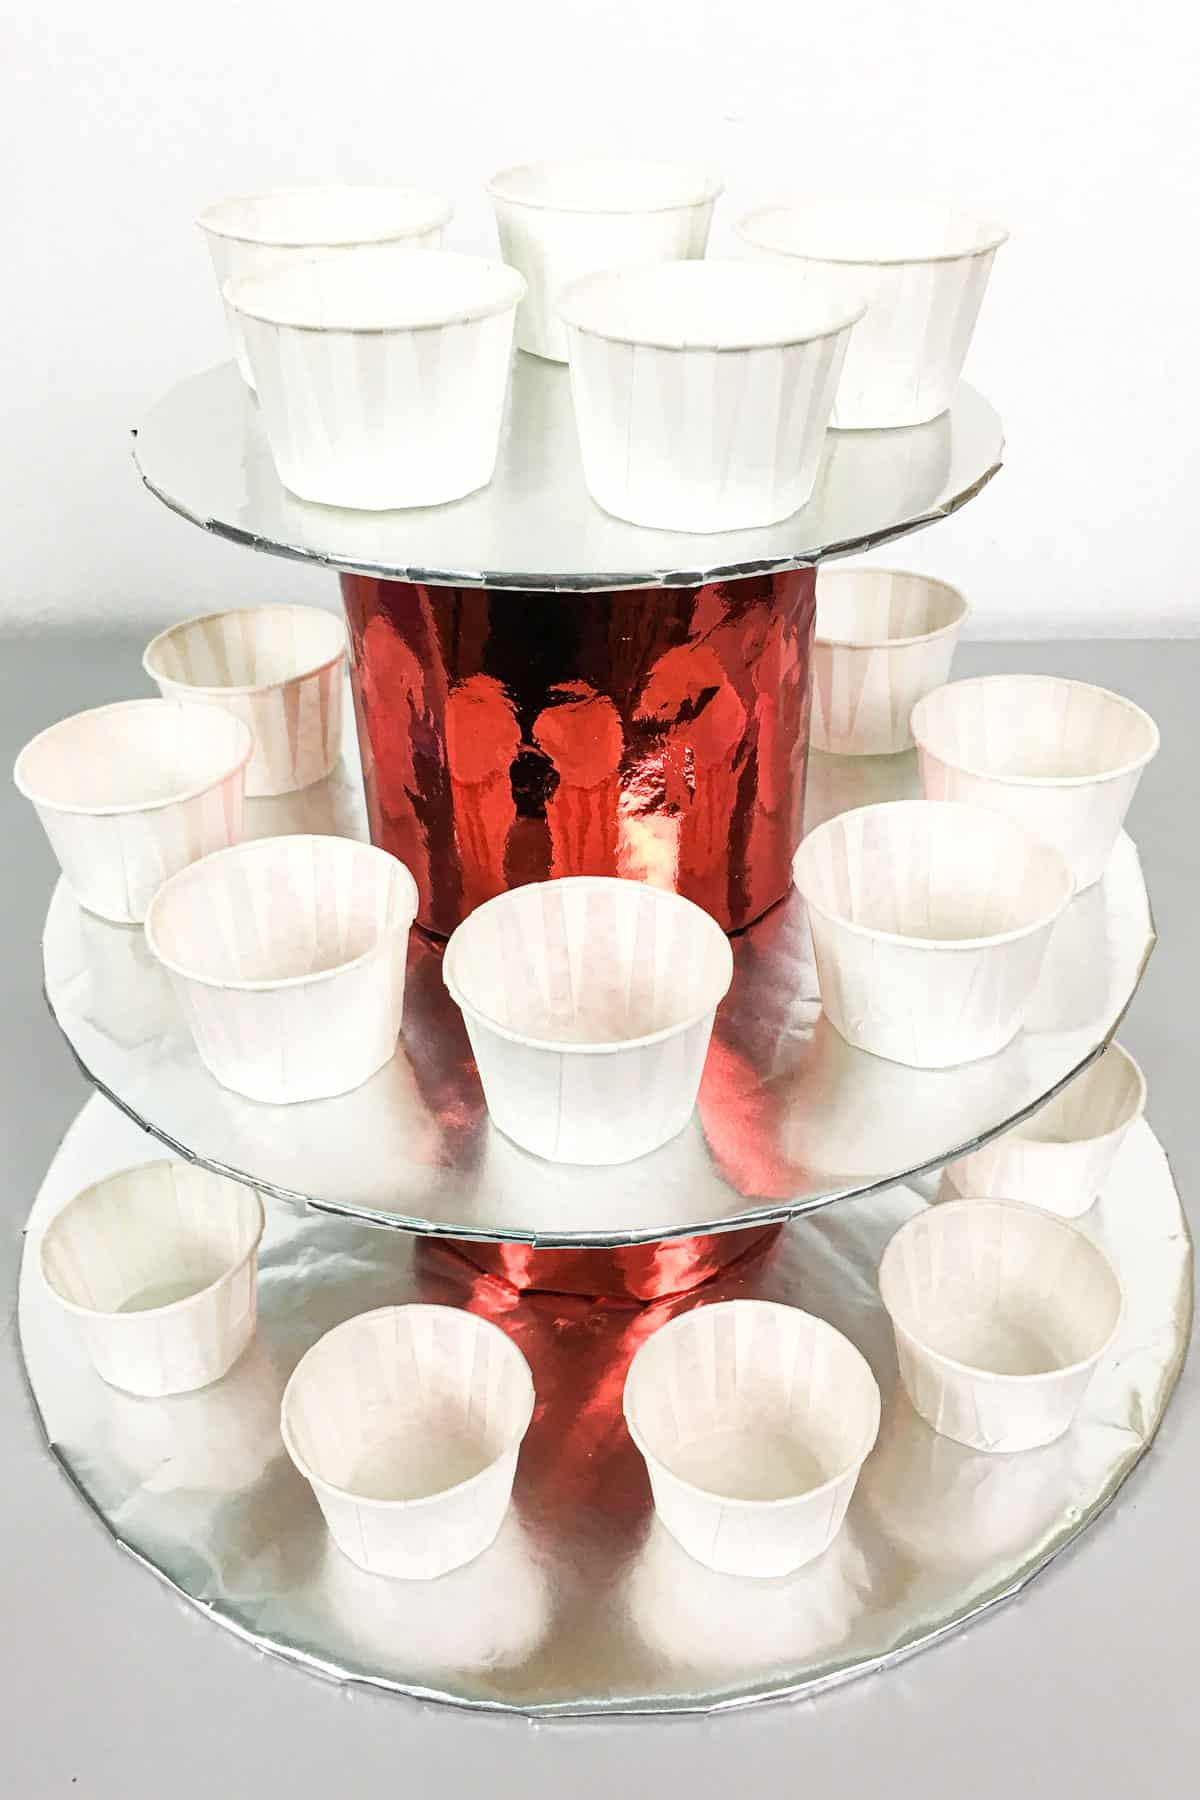 A 3 tier cupcake holder in silver and red